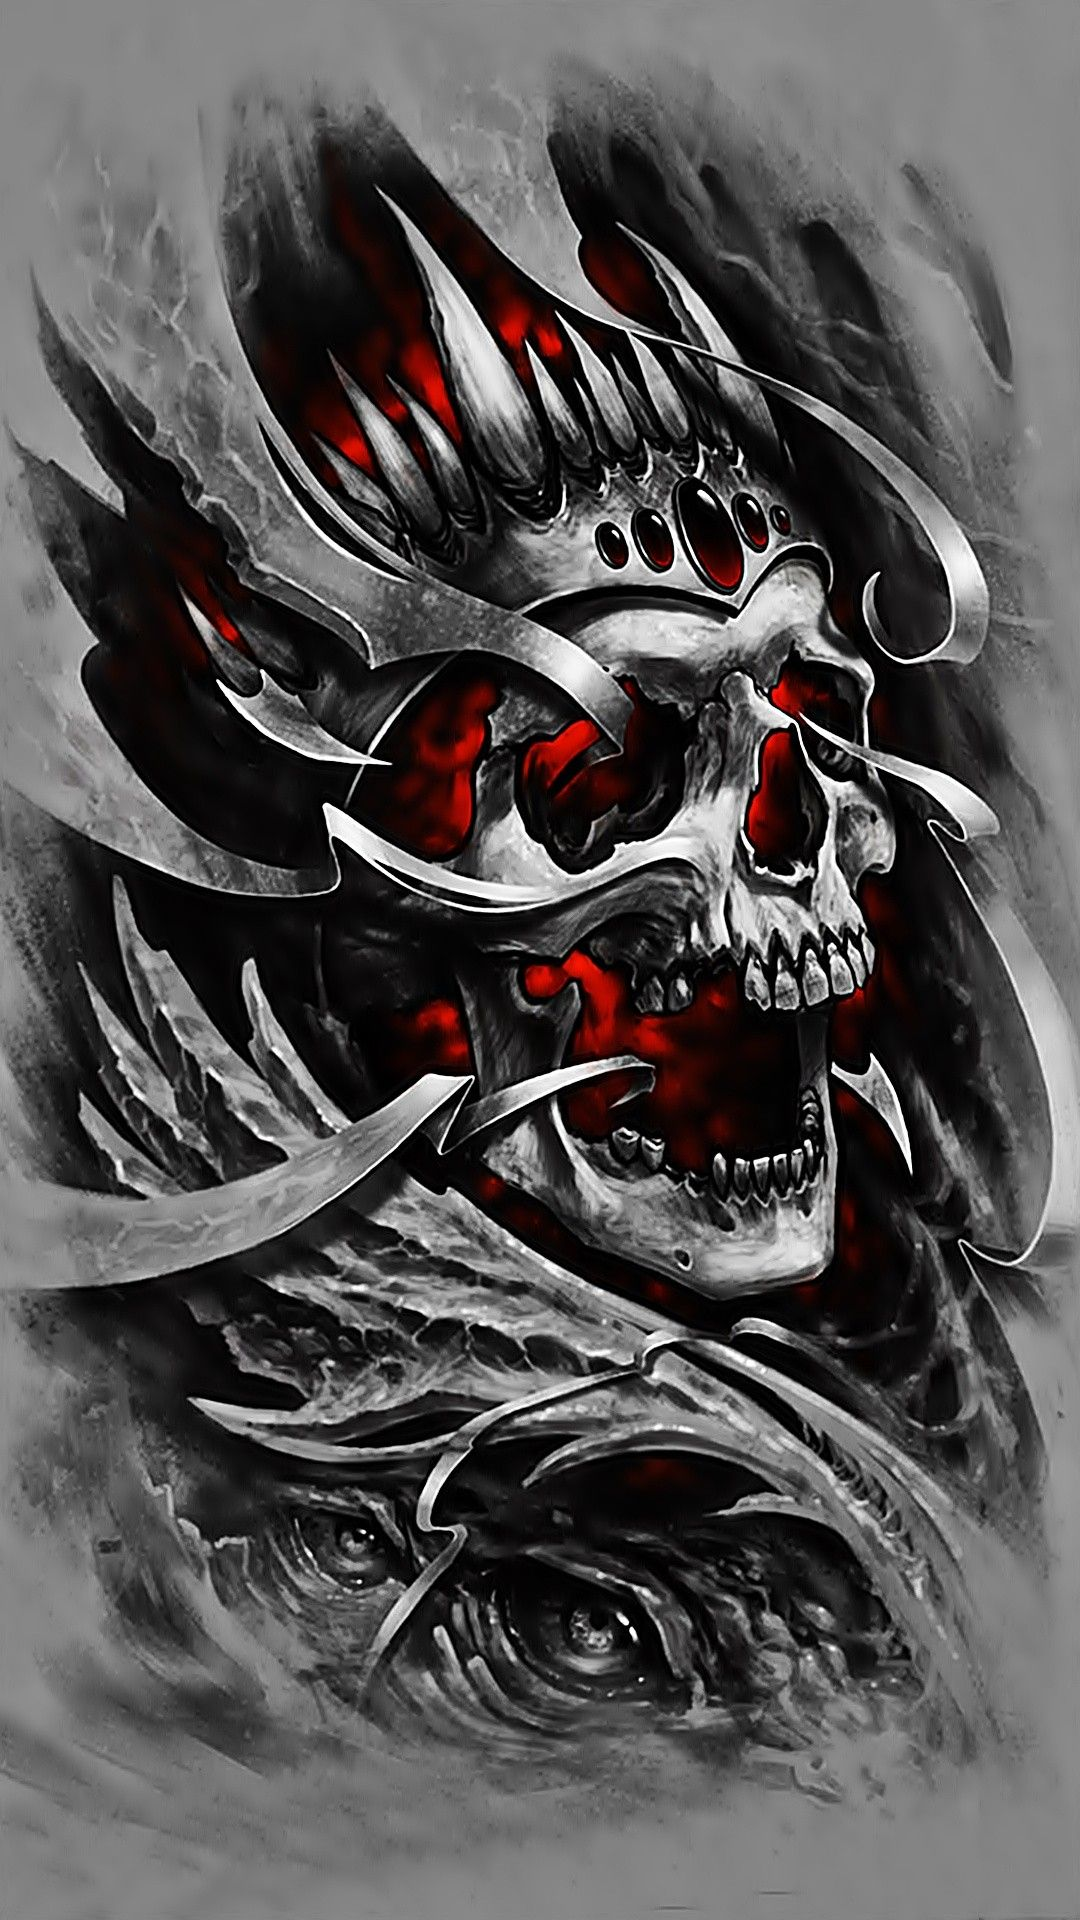 Pin By Michelle Buffington On Phone Backgrounds 30 Blue Dragon Tattoo Dragon Art Dragon Tattoo Designs